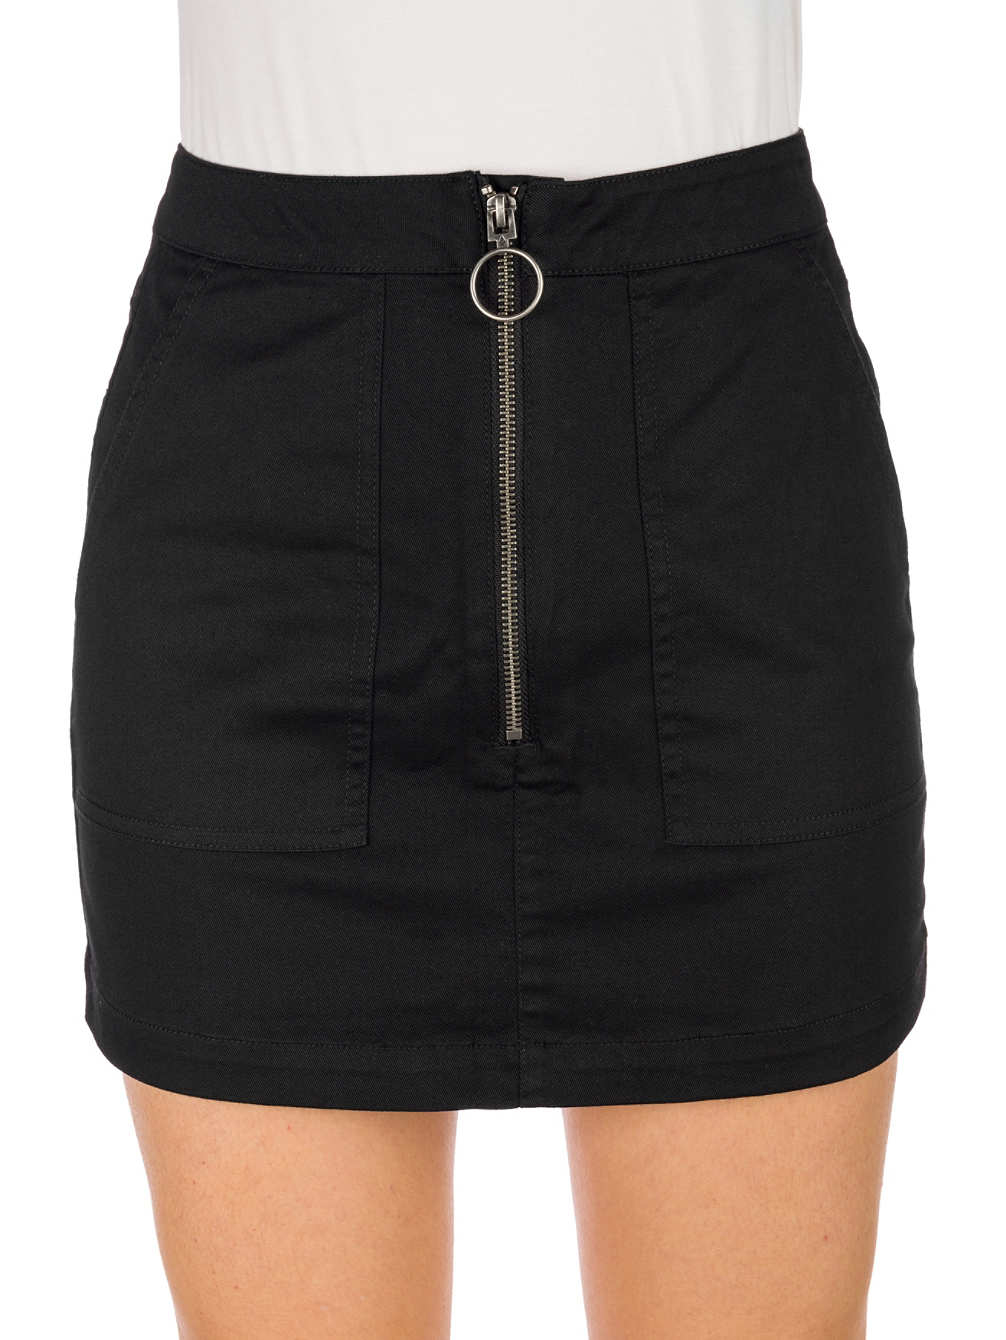 Gonna Volcom Frochickie Skirt ( More Colors )